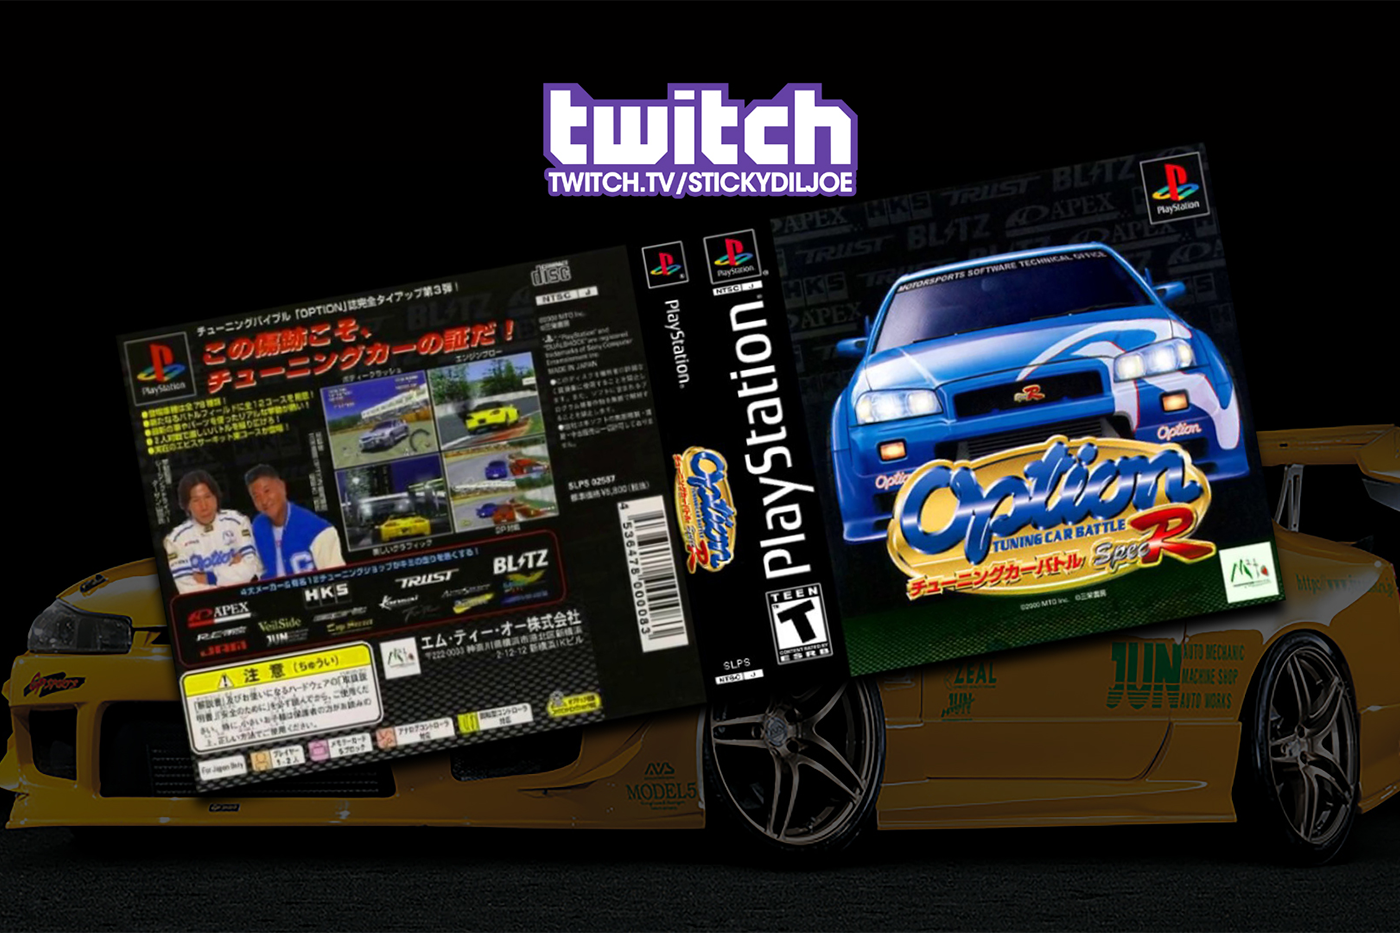 Option Tuning Car Battle Spec-R for PS1 on Twitch!